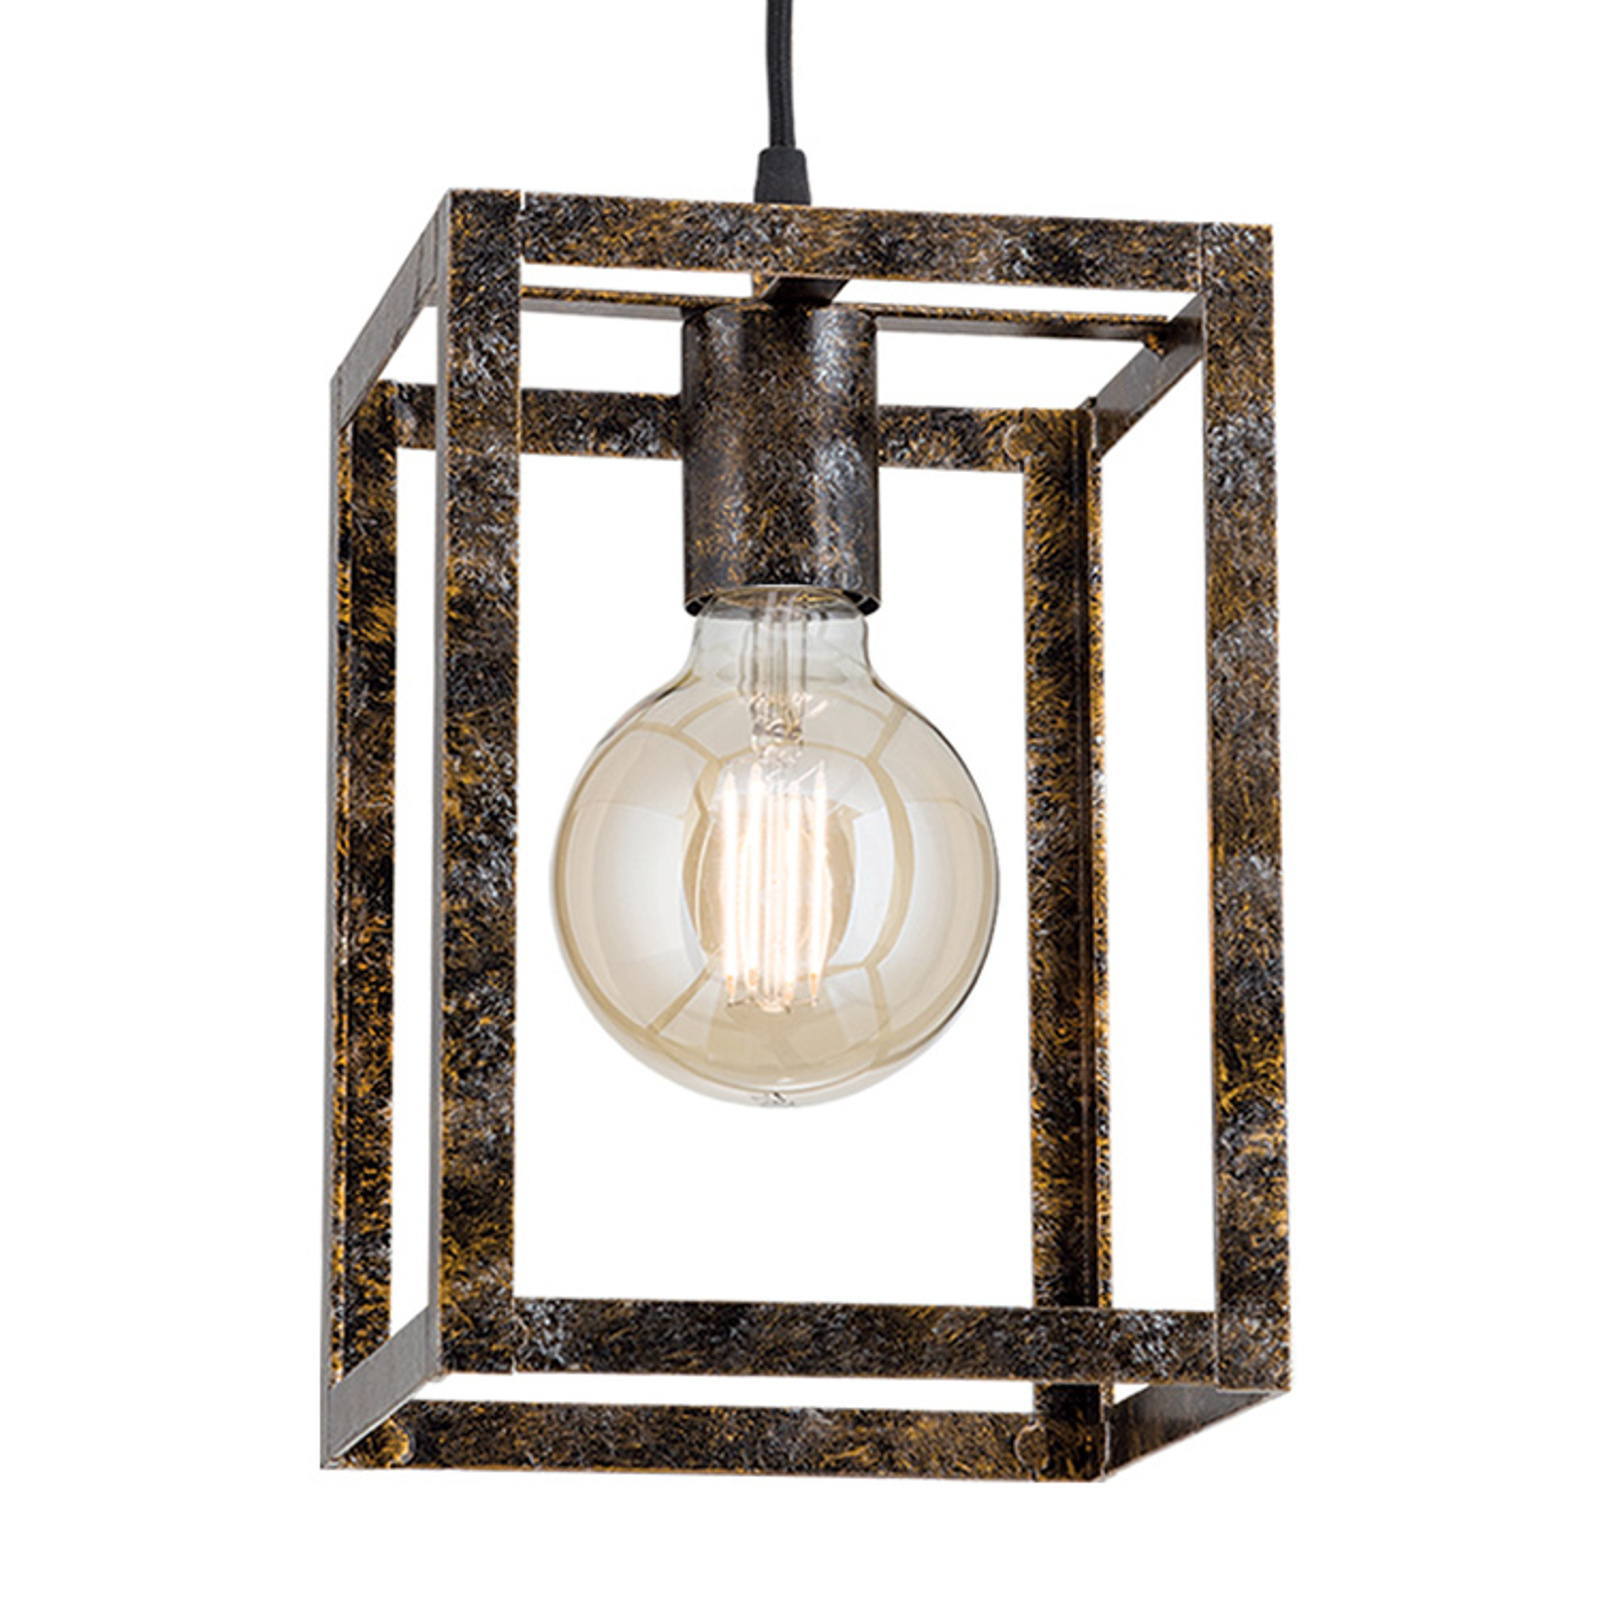 Hanglamp Cage in roest-optiek 1 lamp